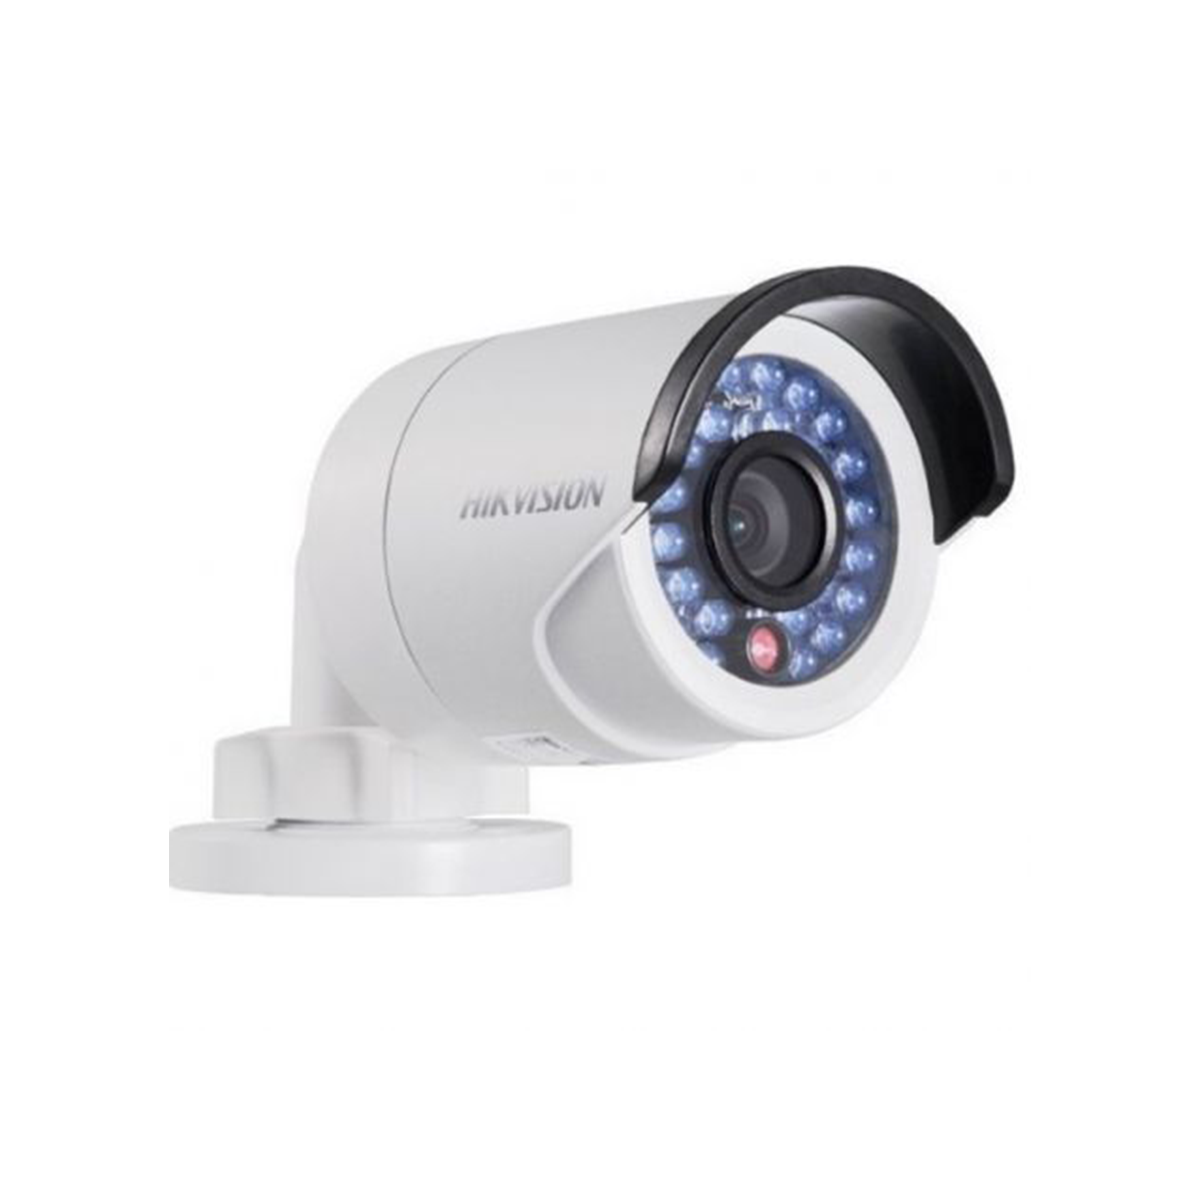 Hikvision 4 MP WDR Mini Bullet Network Camera | DS-2CD2042WD-I